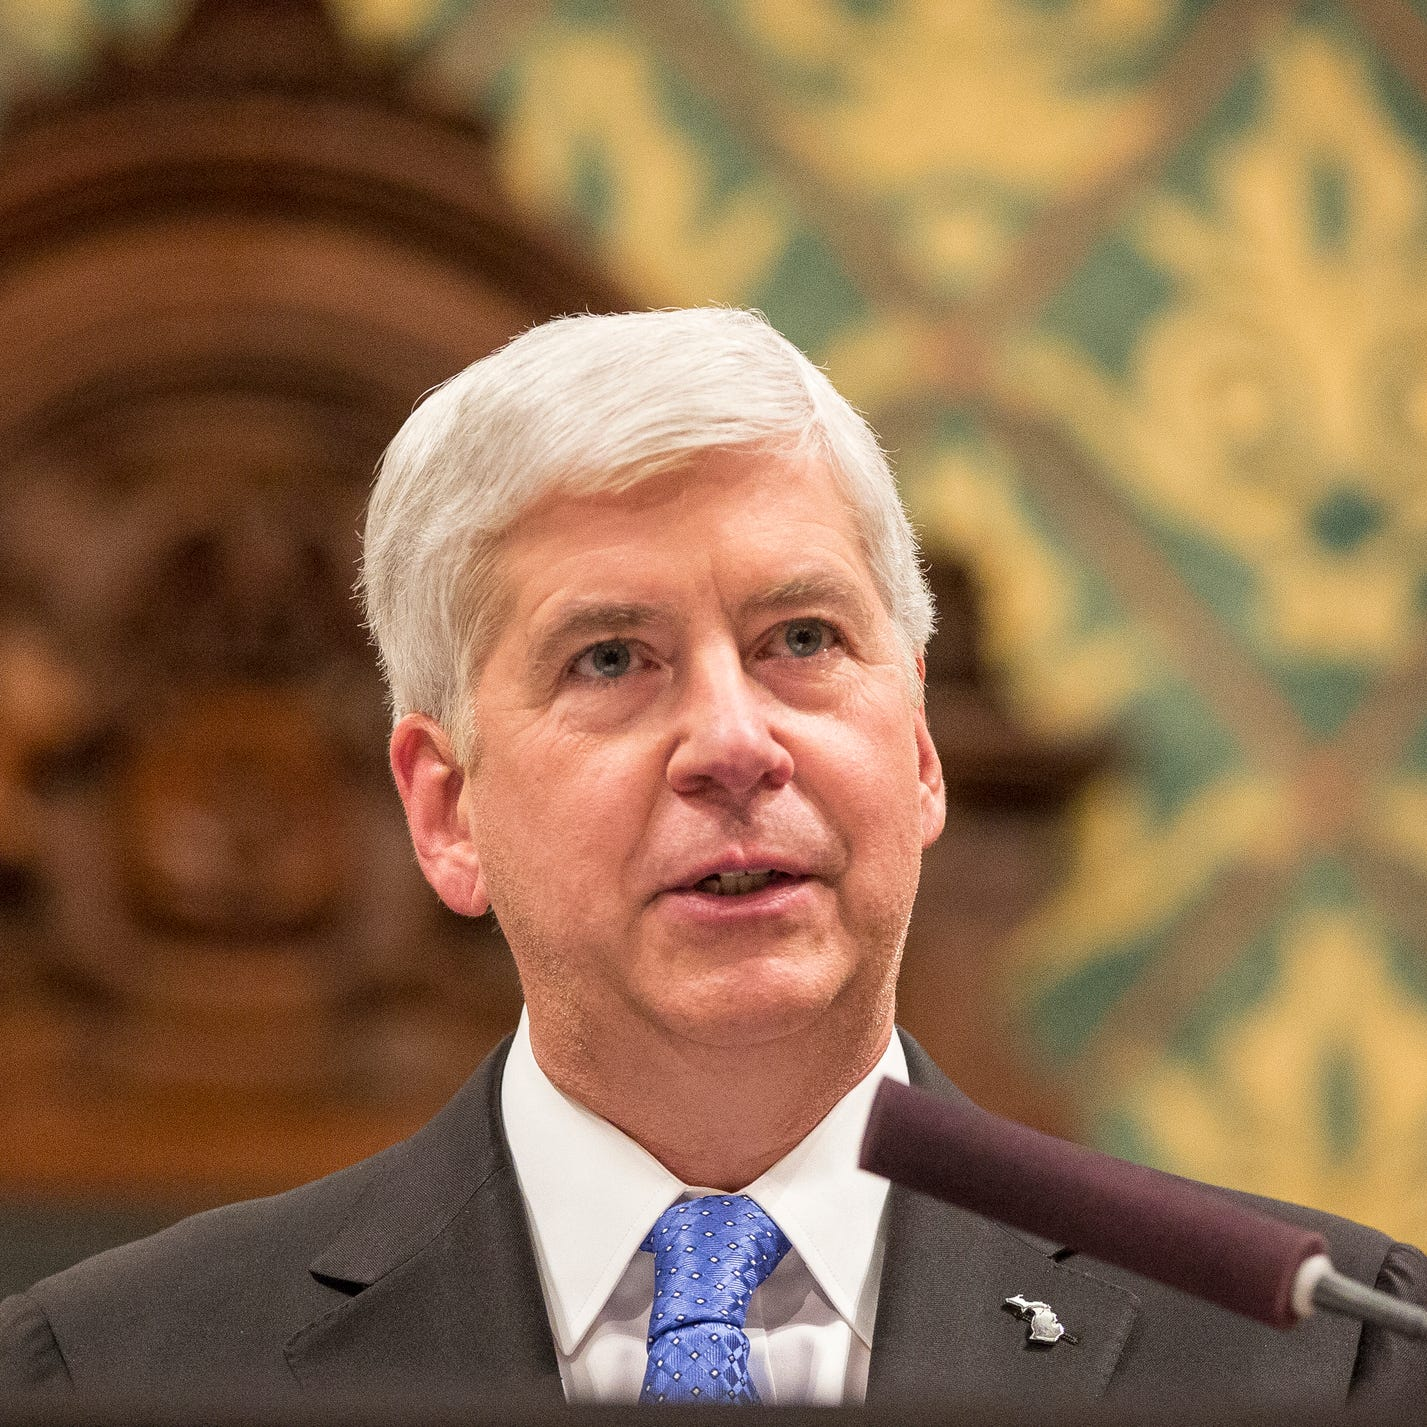 Flint residents can sue former Gov. Snyder over water disaster, judge rules